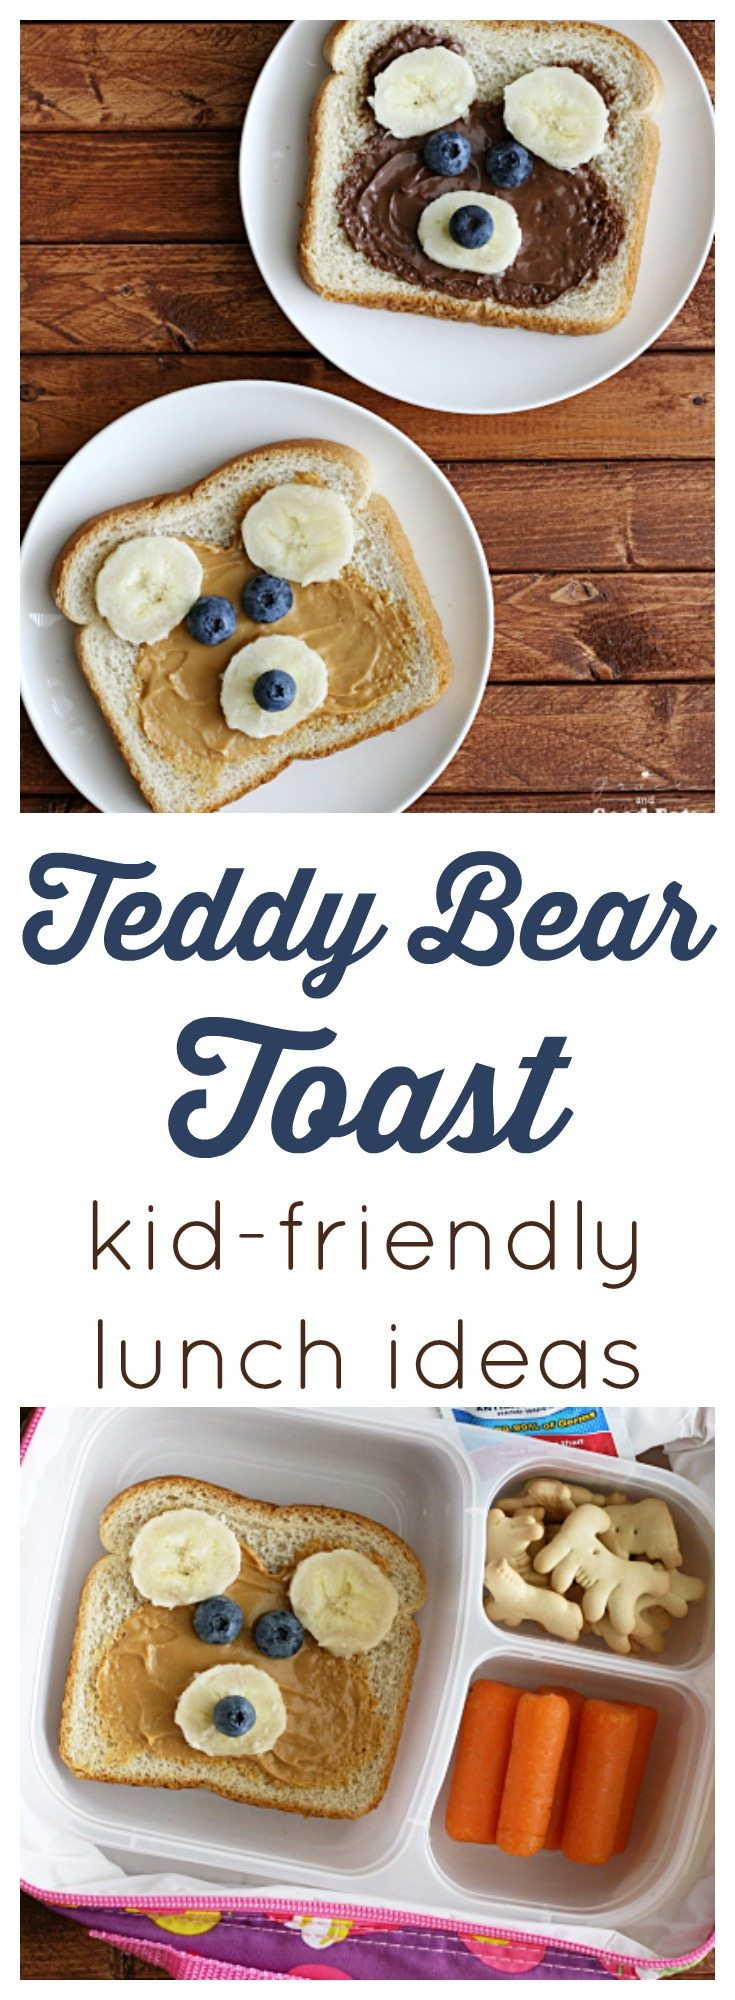 Easy Teddy Bear Toast lunchbox idea! Cute with peanut butter or Nutella!